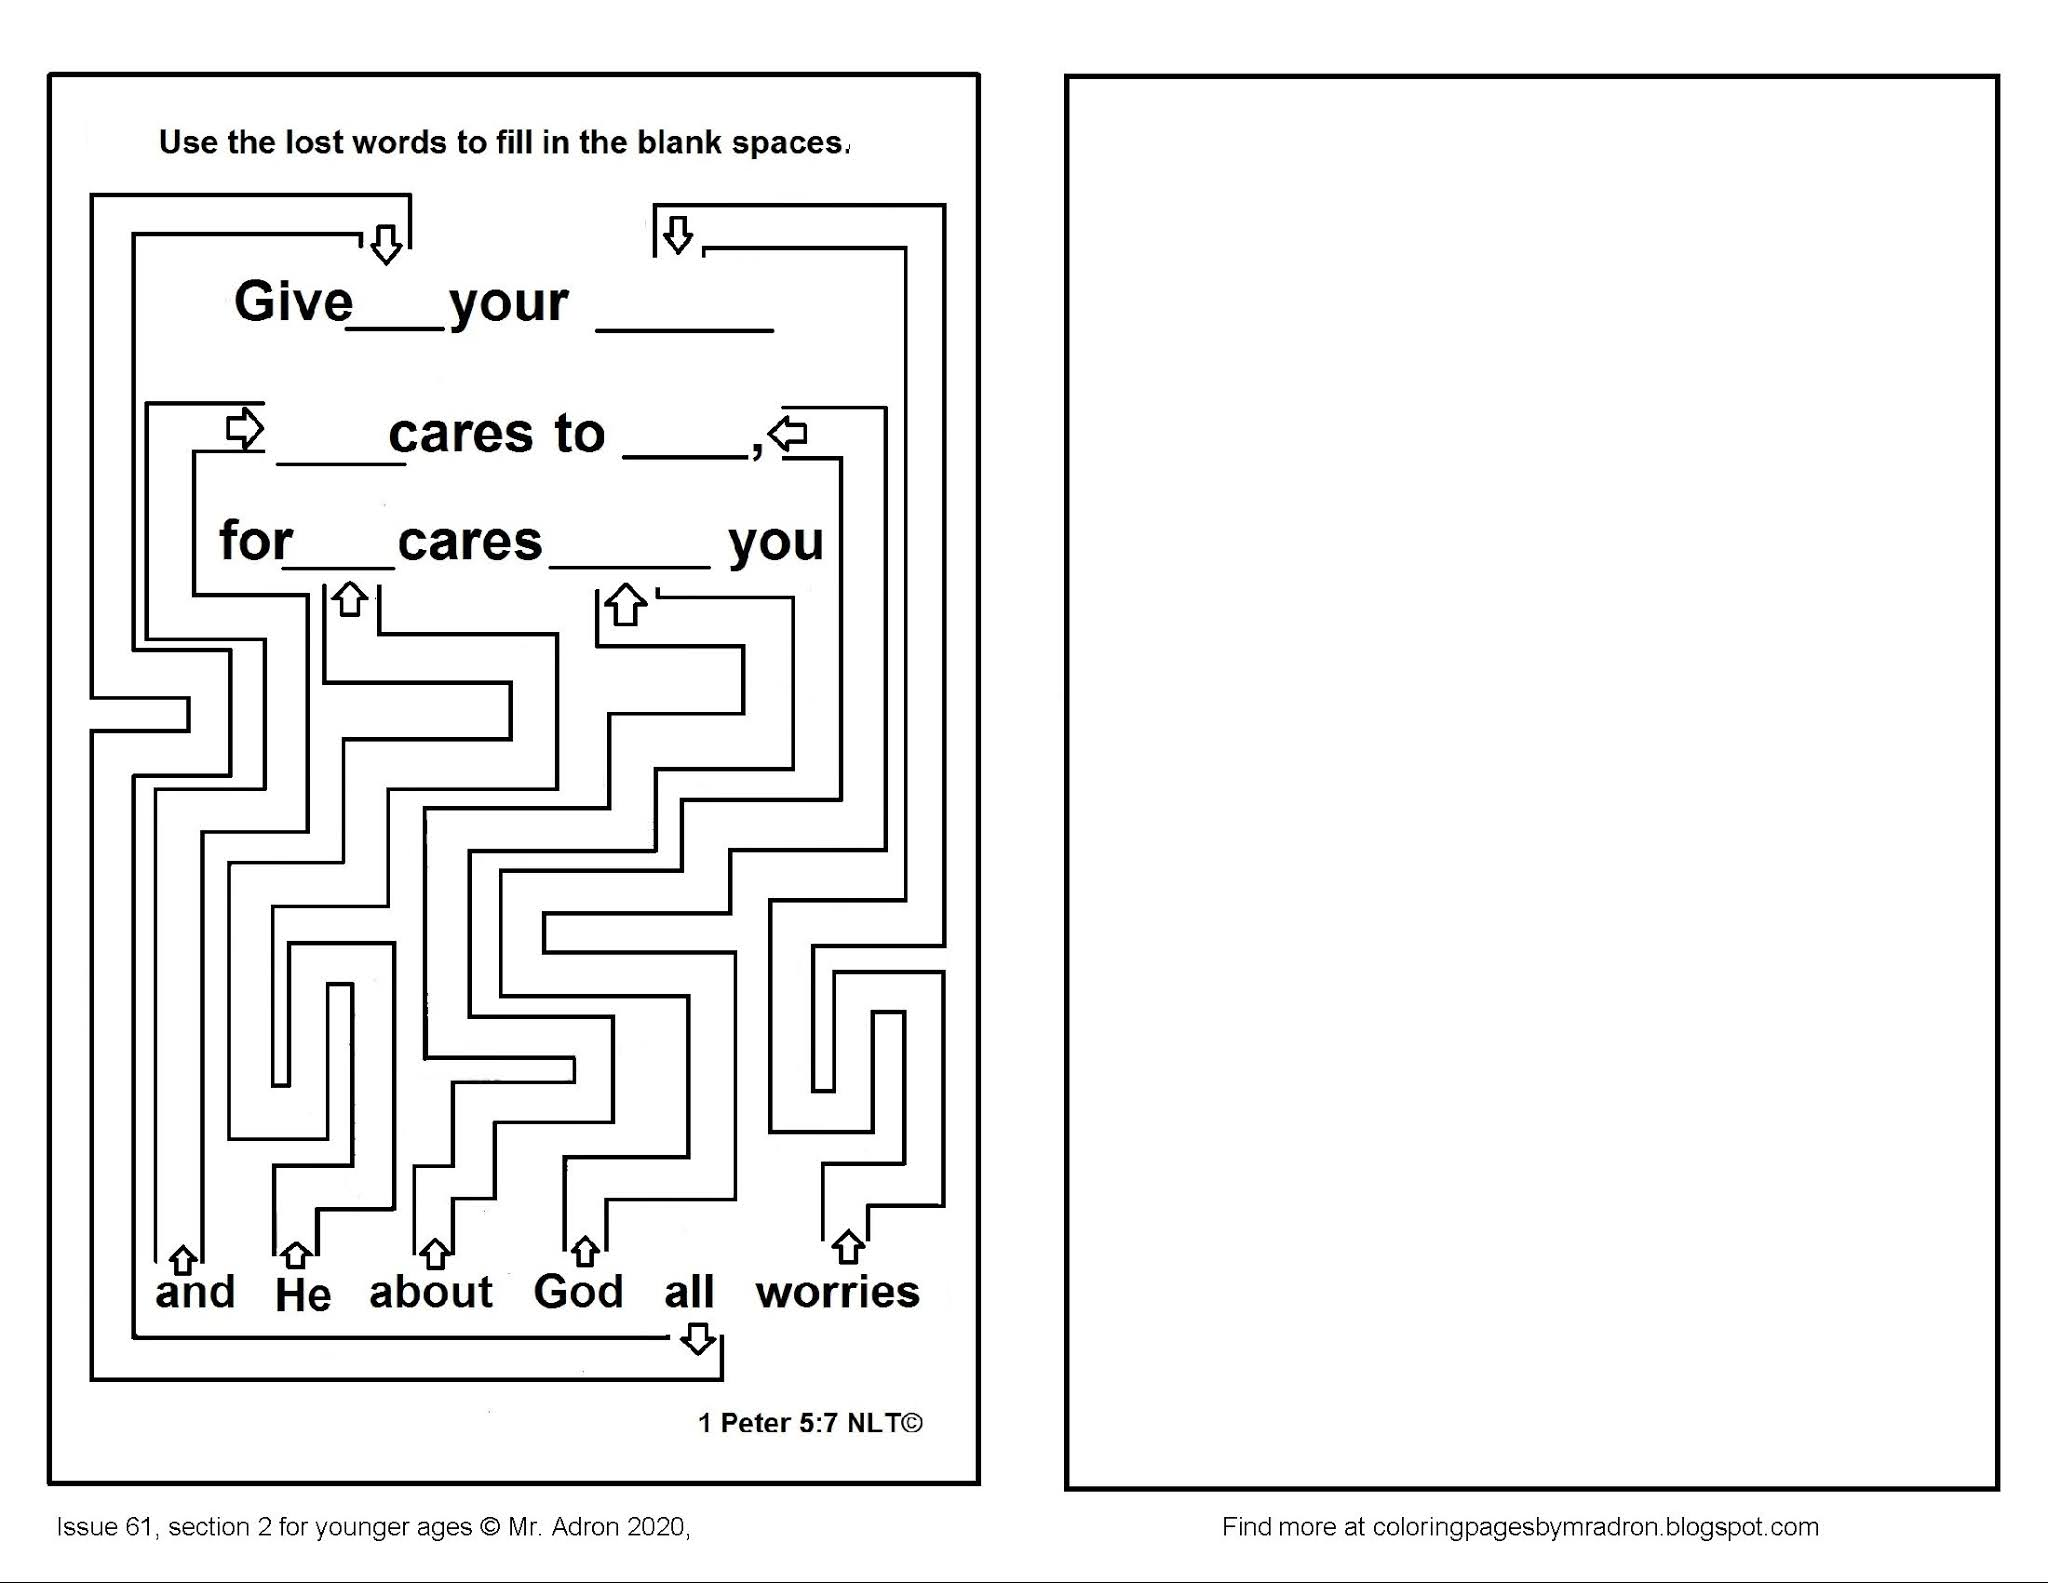 1 peter 5 7 coloring page coloring pages for kids by mr adron 7 coloring peter page 1 5